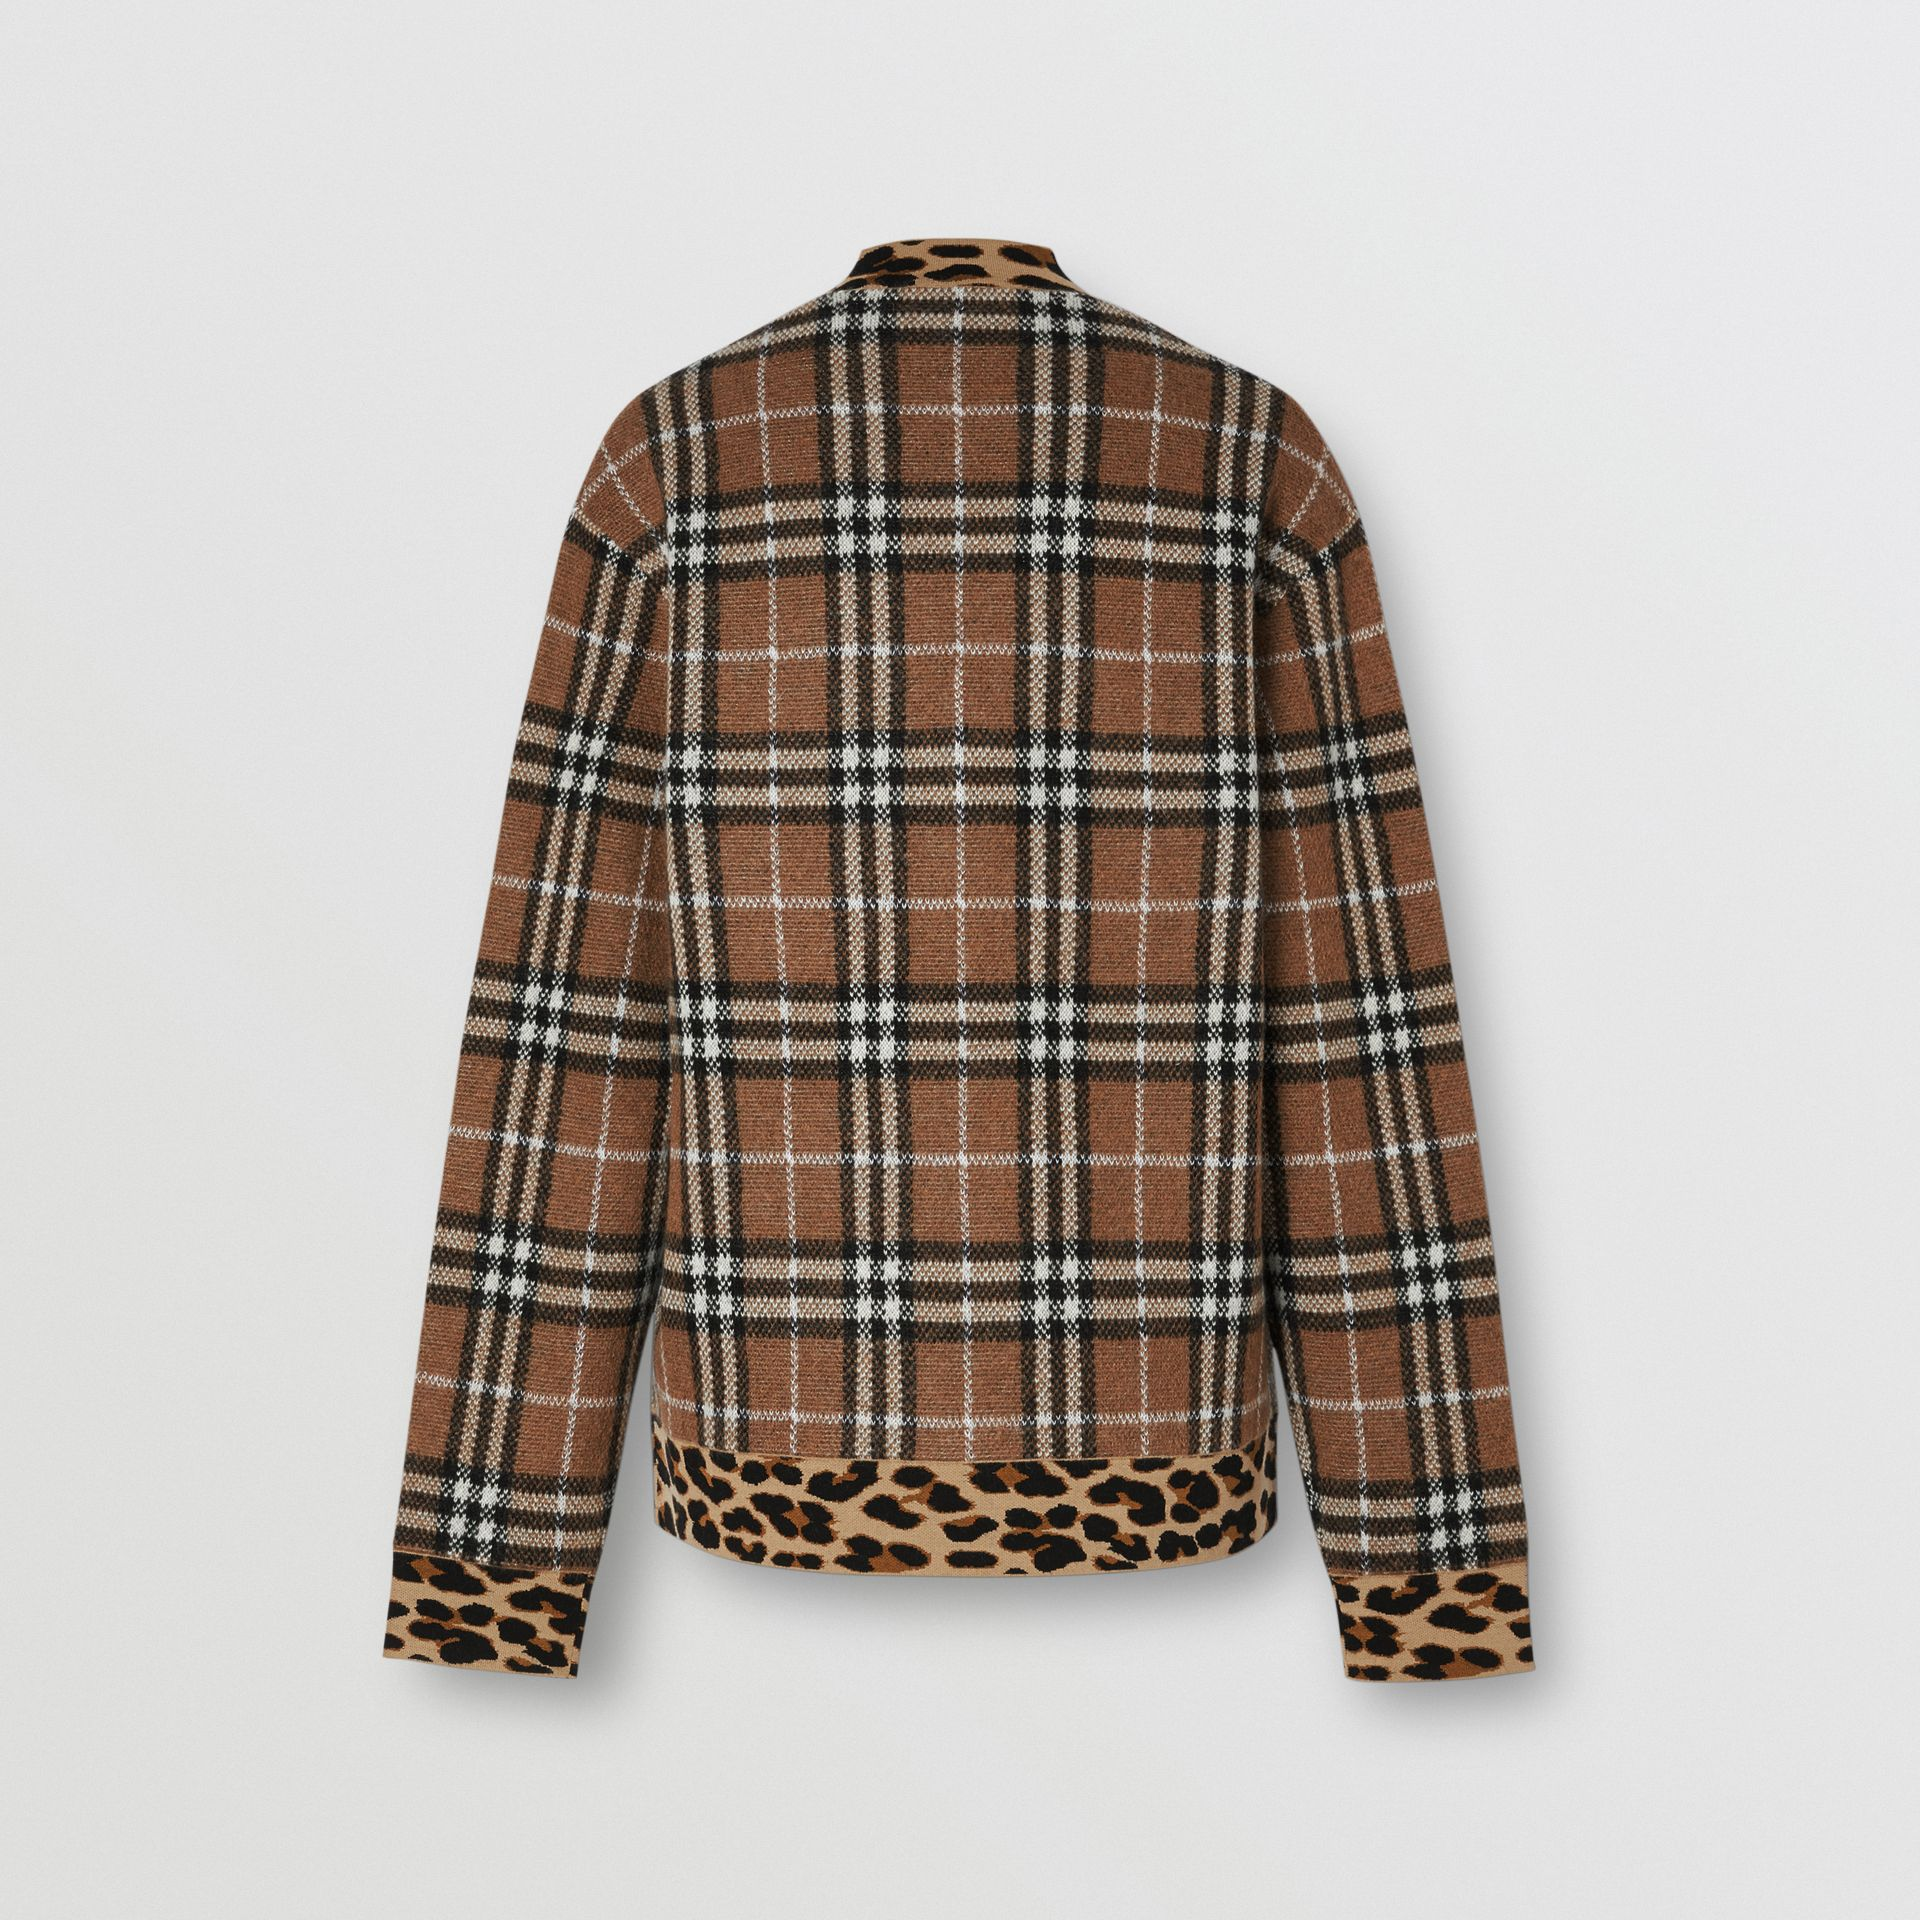 Leopard Detail Vintage Check Cashmere Blend Sweater in Archive Beige - Women | Burberry Hong Kong S.A.R - gallery image 6